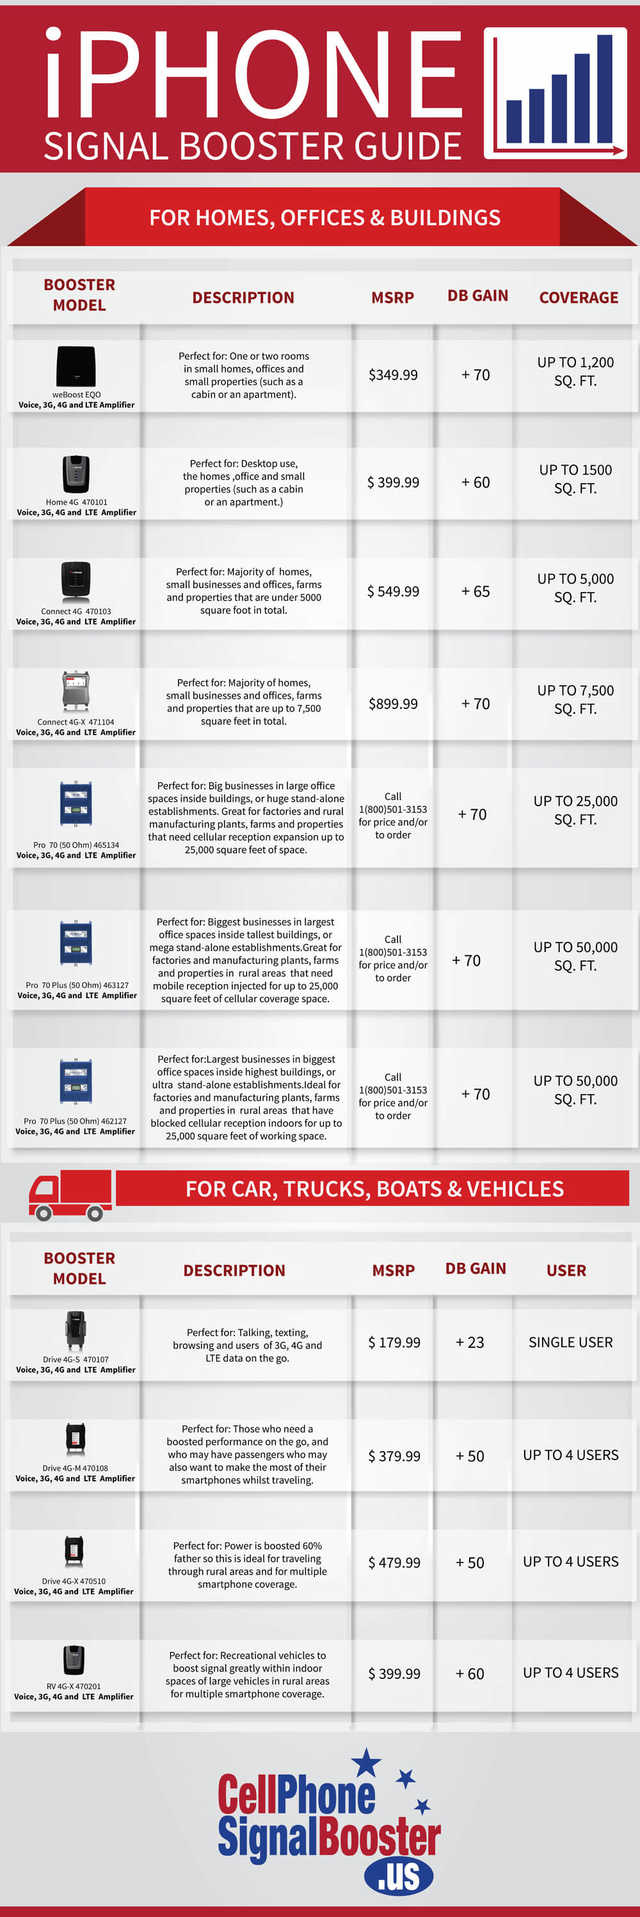 Iphone signal booster guide infographic